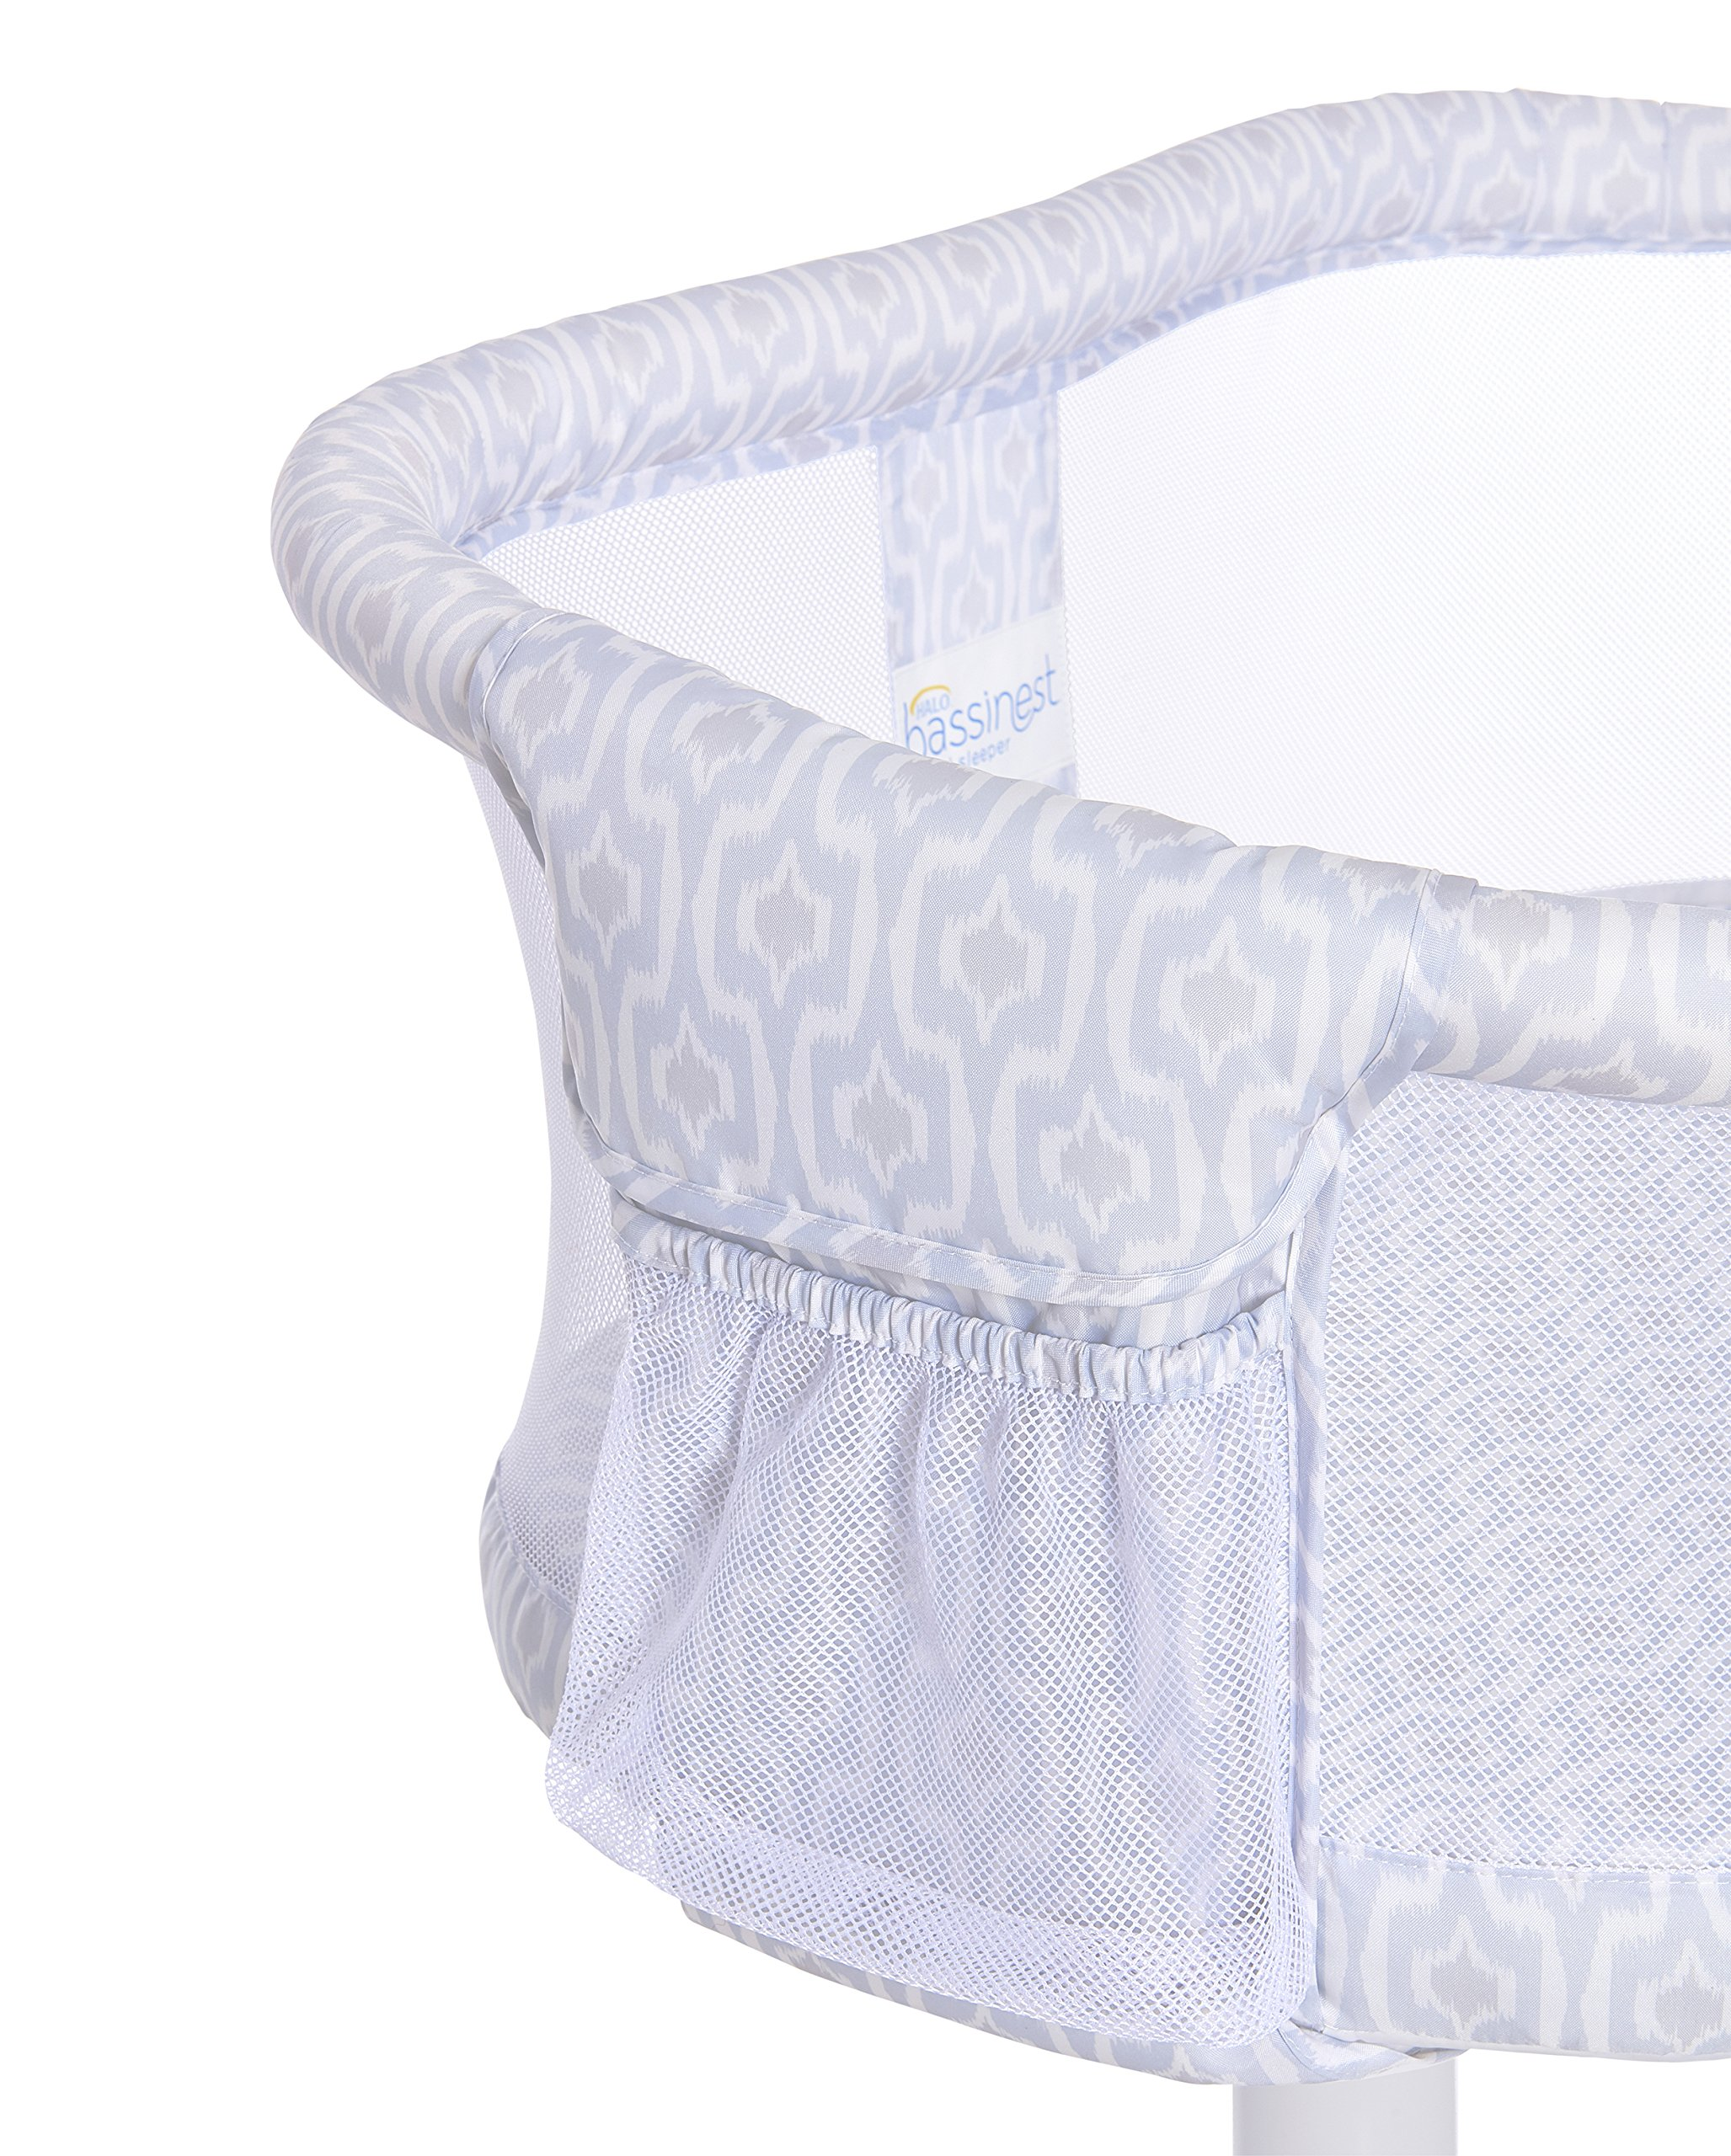 HALO Bassinest Swivel Sleeper Bassinet - Essentia Series, Blue Ikat by Halo (Image #2)